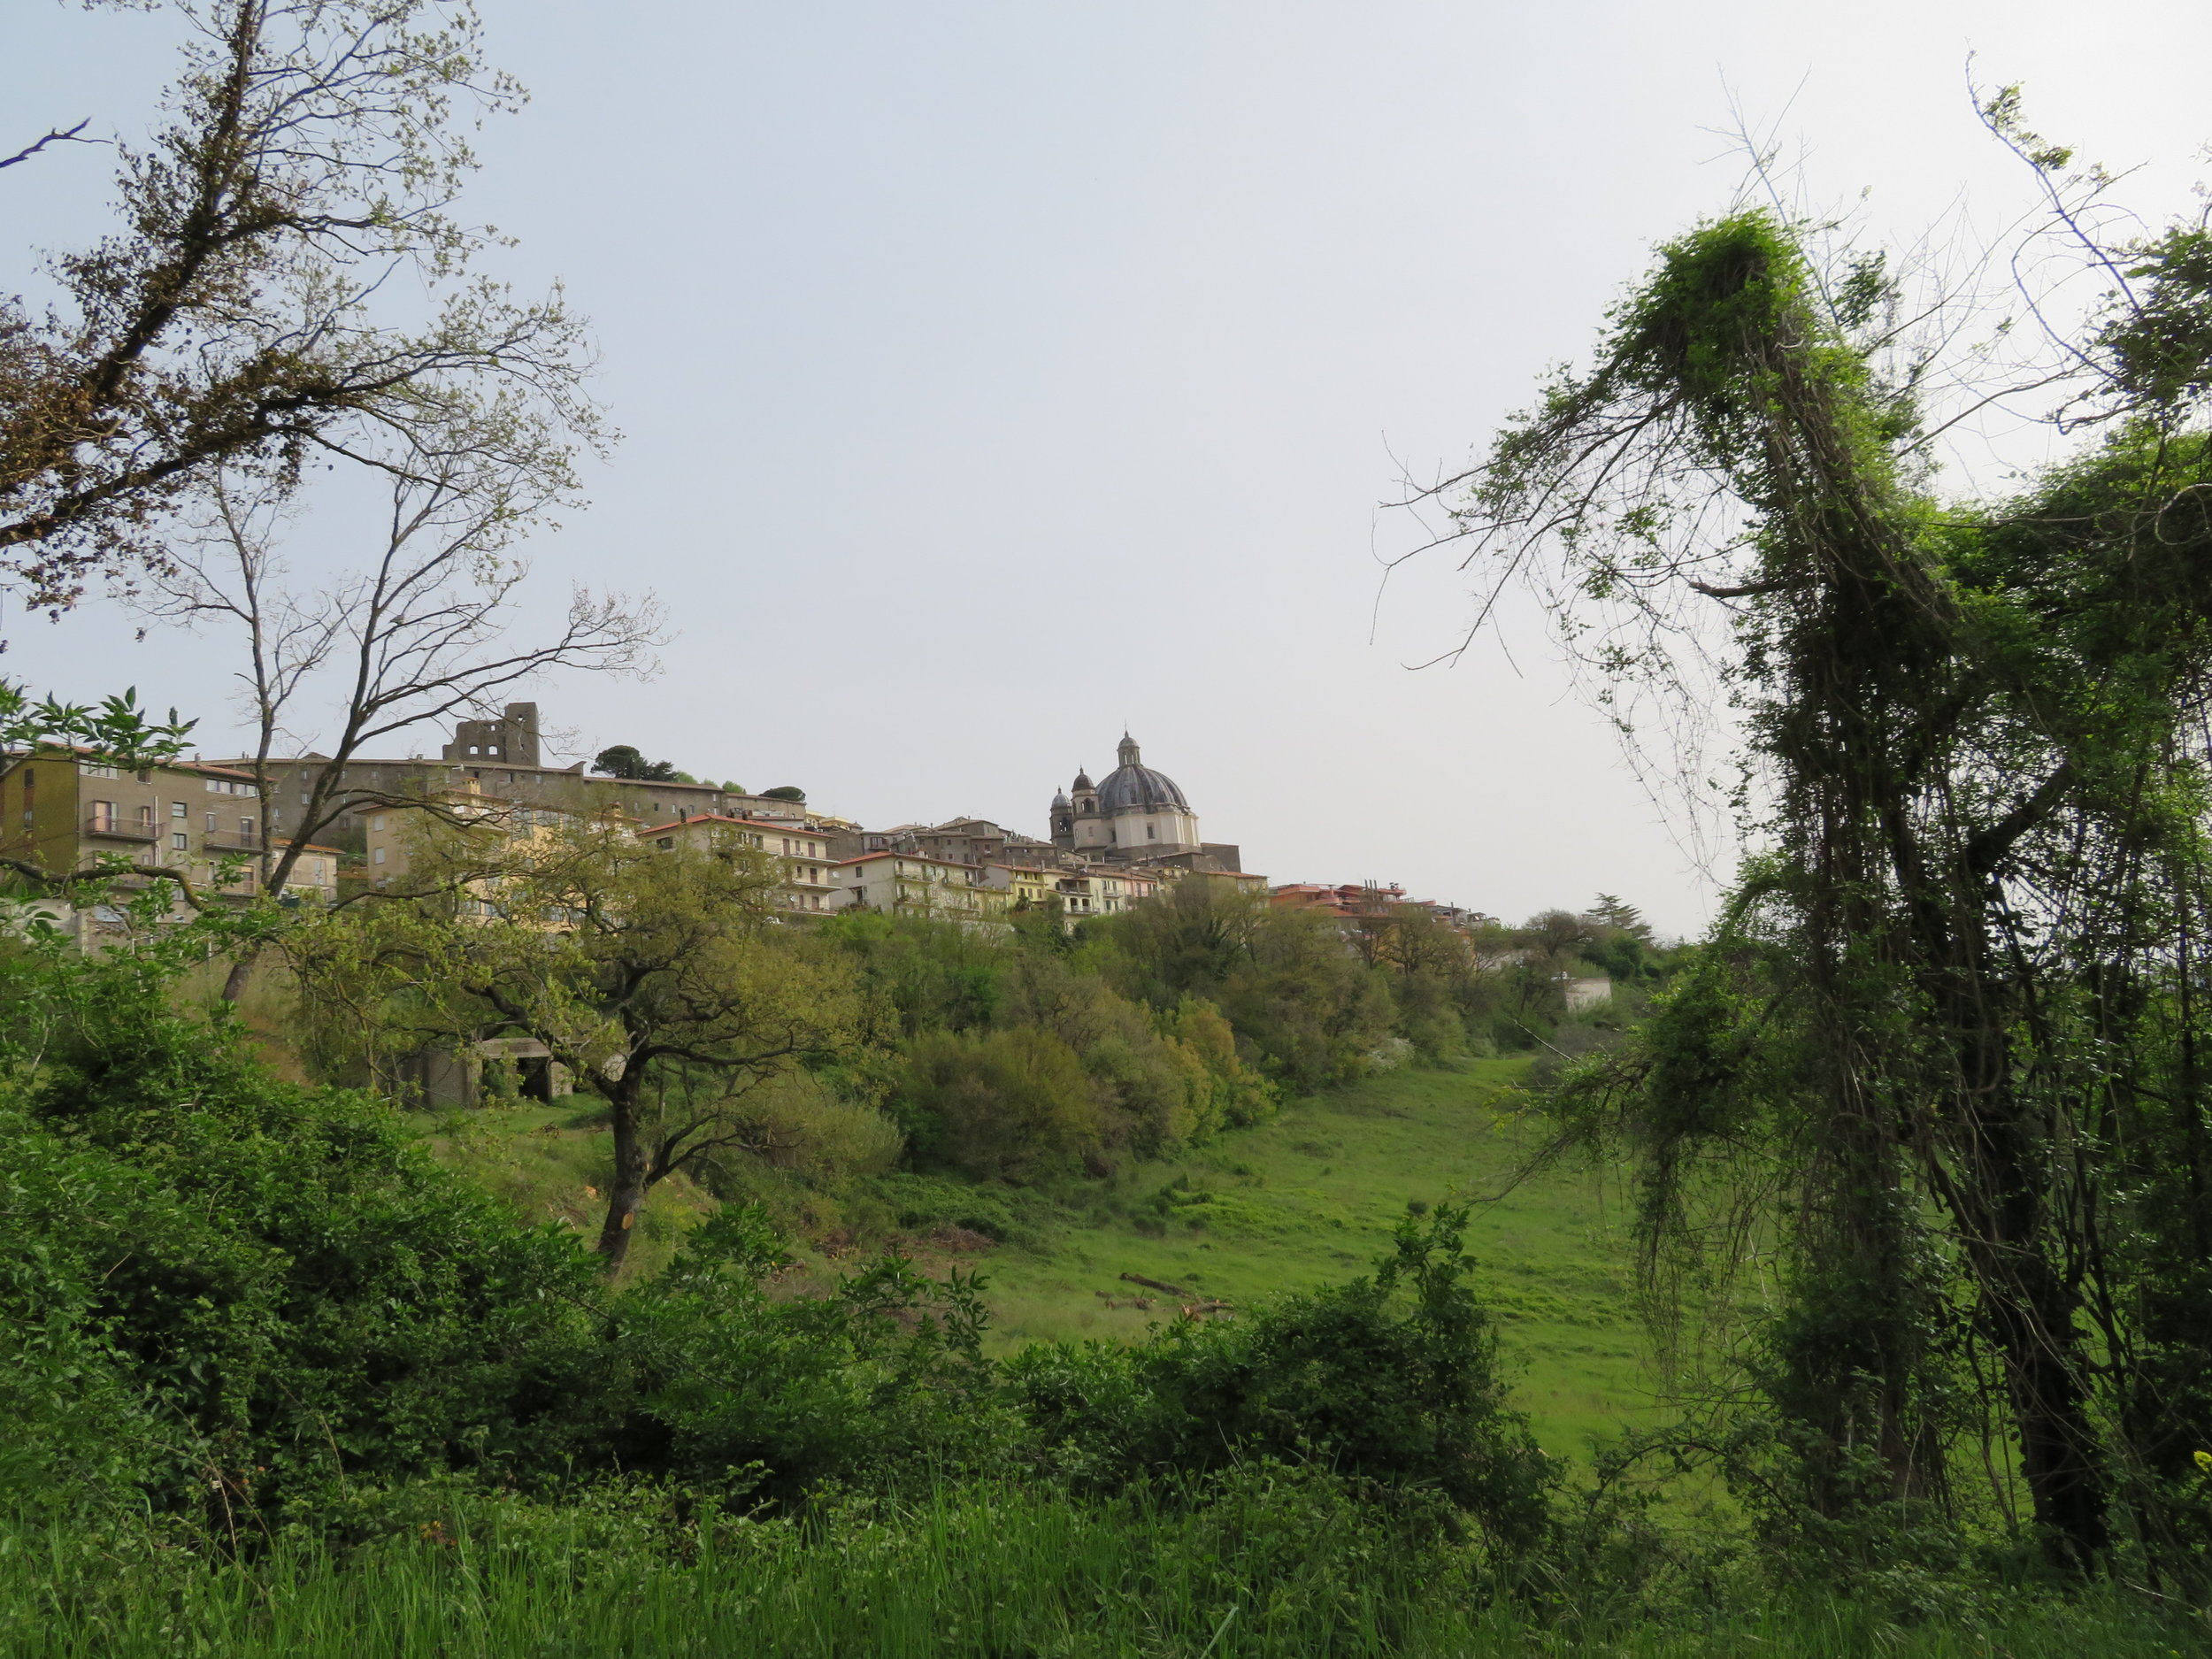 Then it was down, down, down… hard on the knees… beyond the city walls to the path leading to Viterbo. For miles, looking back, we could still see the skyline of Montefiascone and the dome of Rocca di papi.